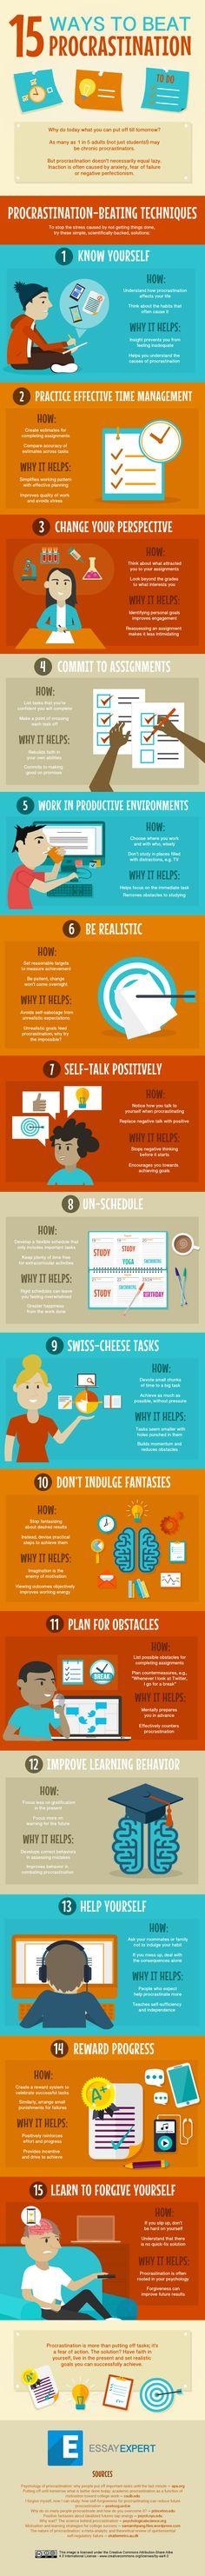 Gerald likes: Practical tips on avoiding procrastination. Wondering about the idea of small punishments for not getting things done! :: 15 Ways to Overcome Procrastination and Get Stuff Done (Infographic) Study Skills, Life Skills, E Learning, Lerntyp Test, Coaching, Education Positive, How To Stop Procrastinating, Time Management Tips, Sales Management